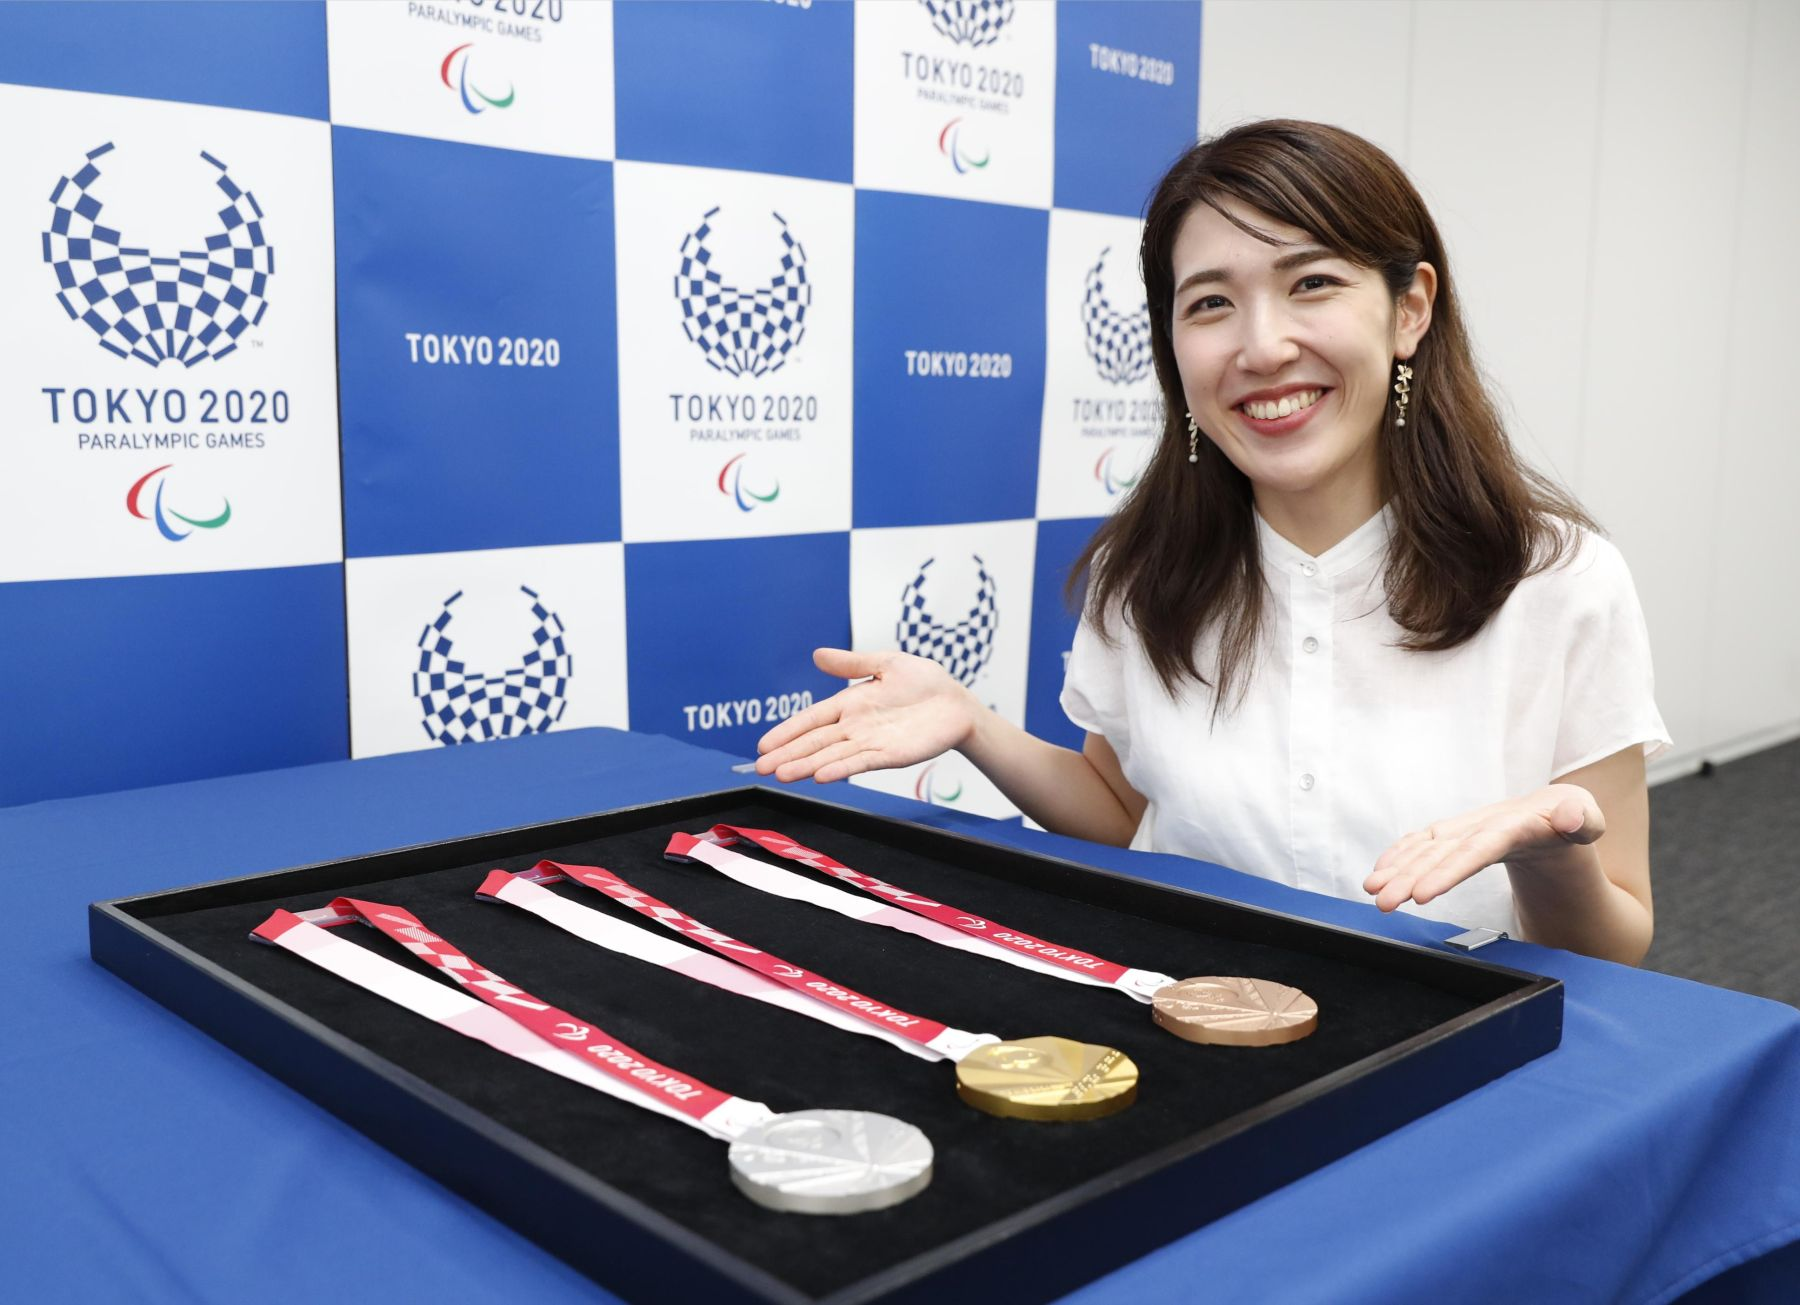 2020 Paralympic Games Medals Feature Japanese Folding Fan Designs 016